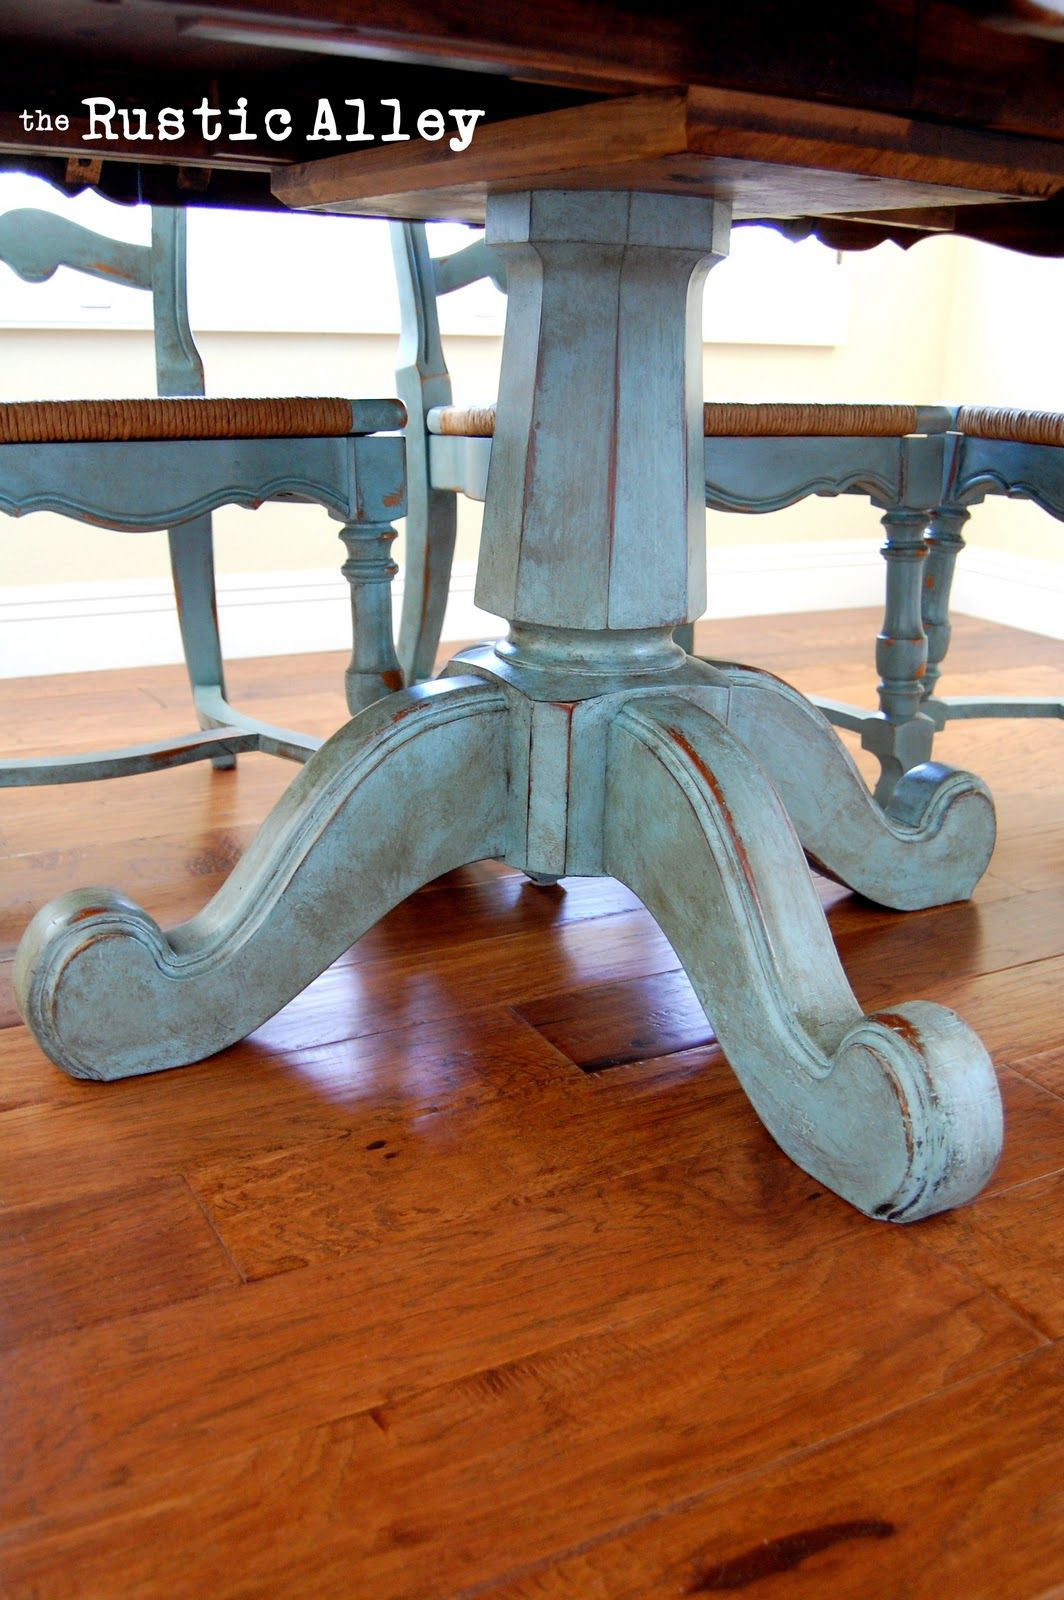 Pin di Cindy Luwho su Re-Painted Furniture & Cabinets 4 | Pinterest ...